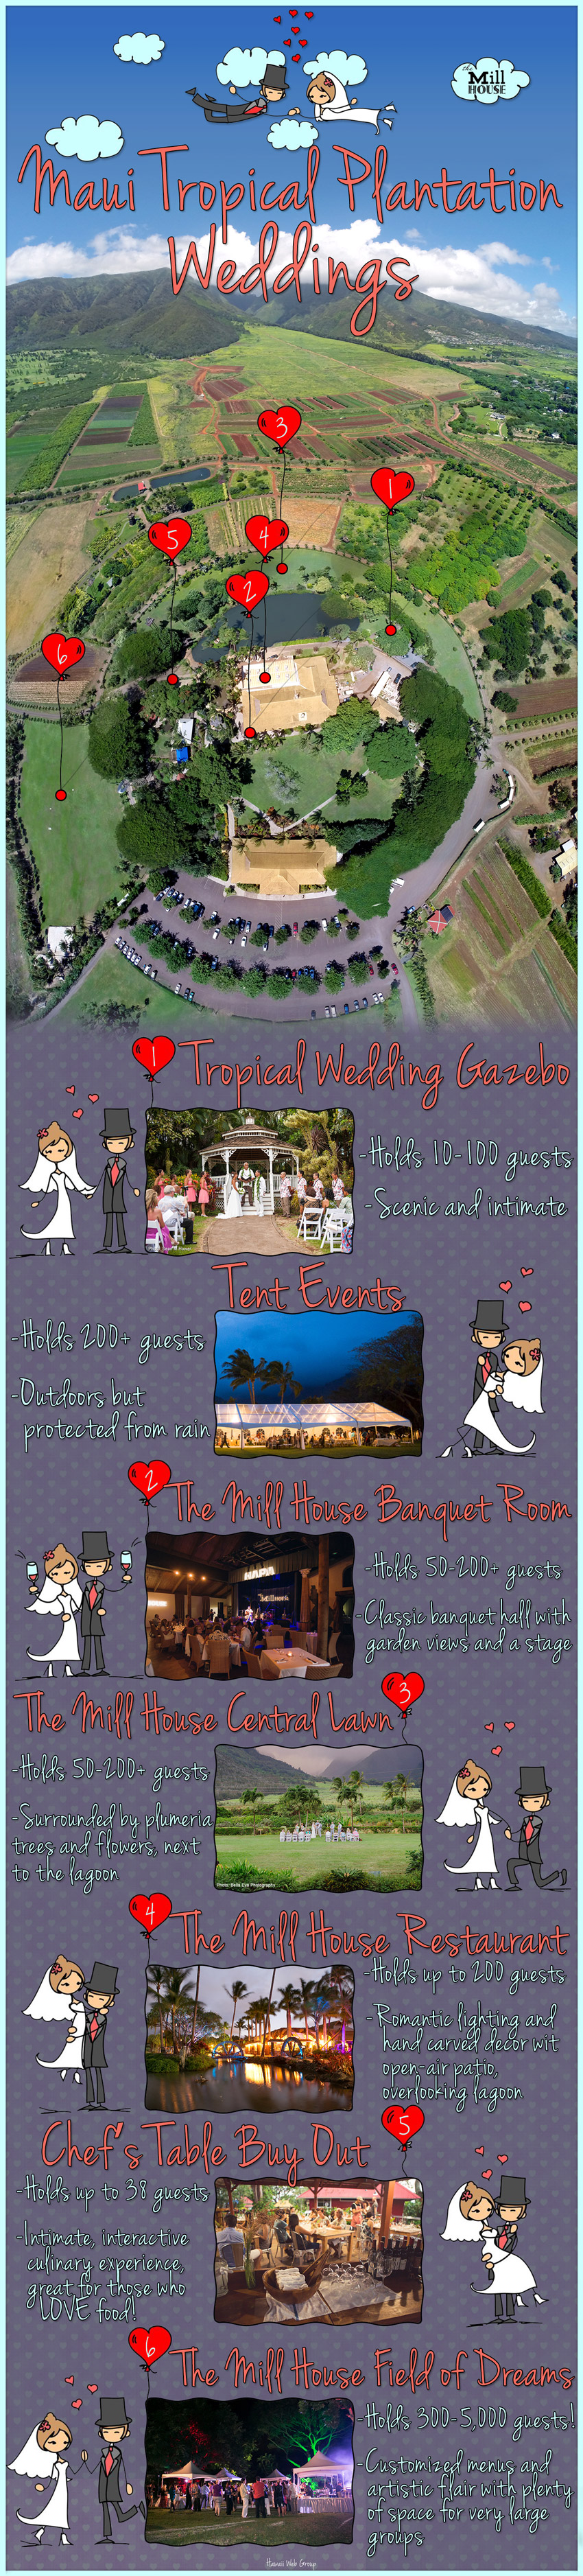 Maui Tropical Plantation Wedding Venue Infographics